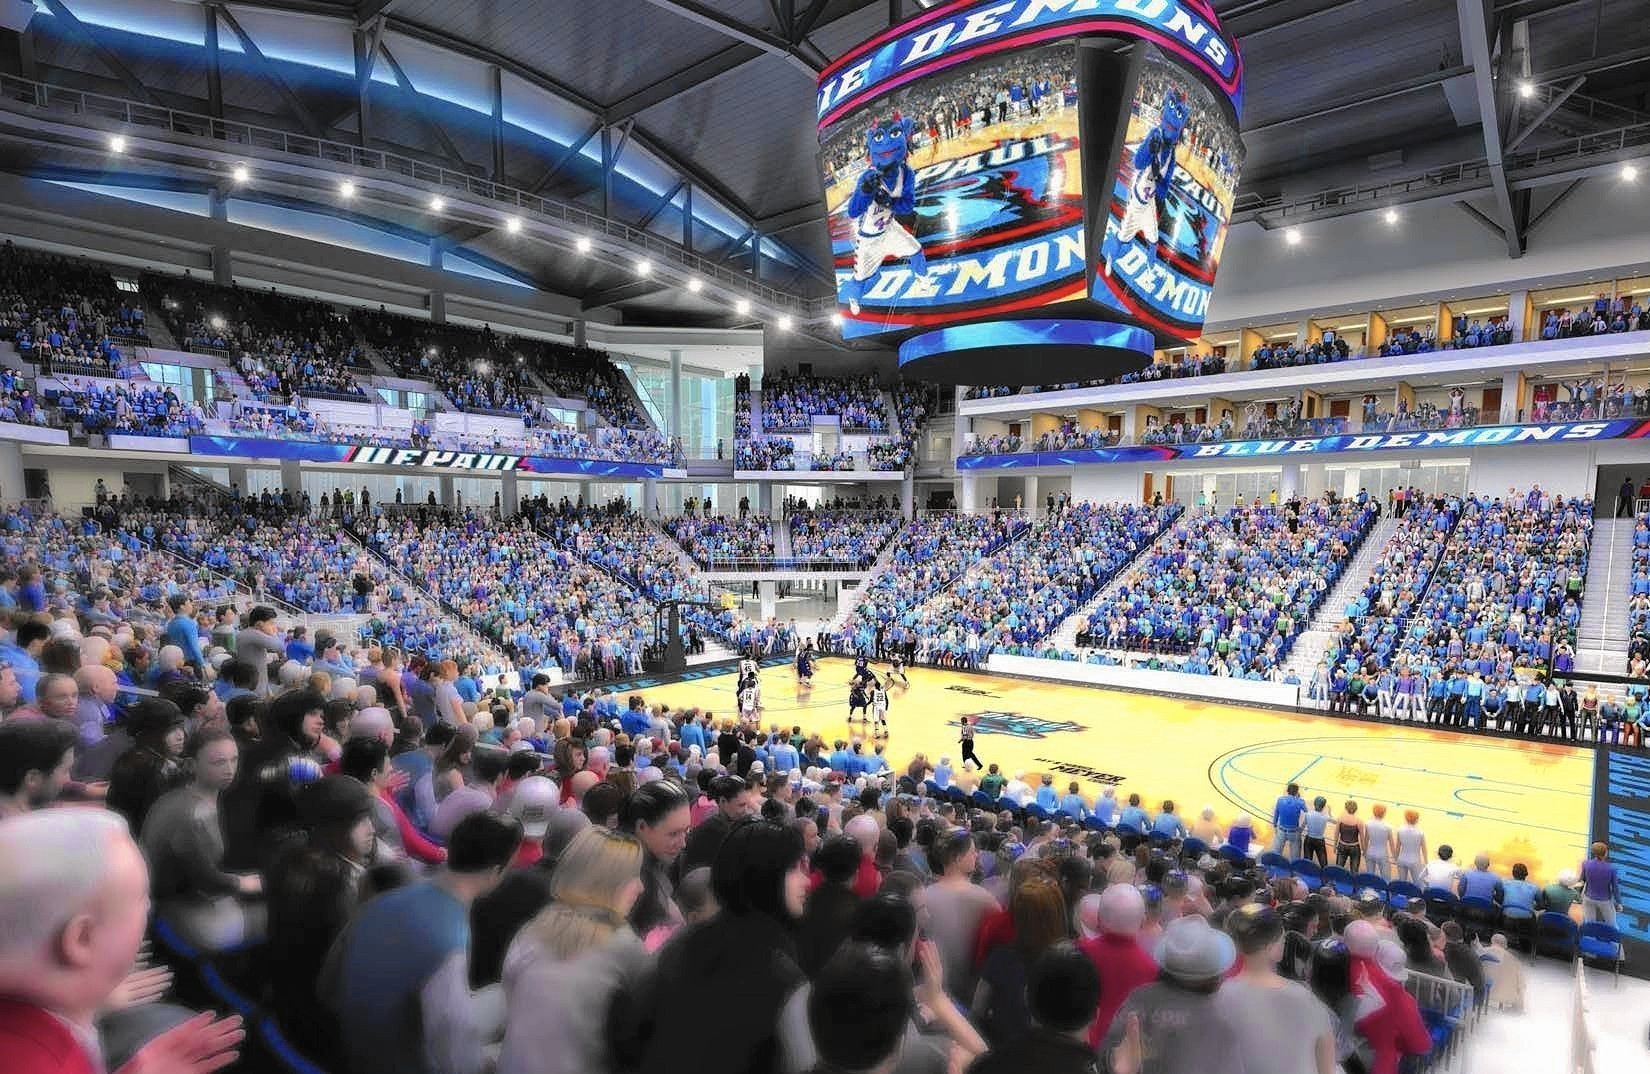 Depaul Stands To Reap 34 Million From Basketball Arena By